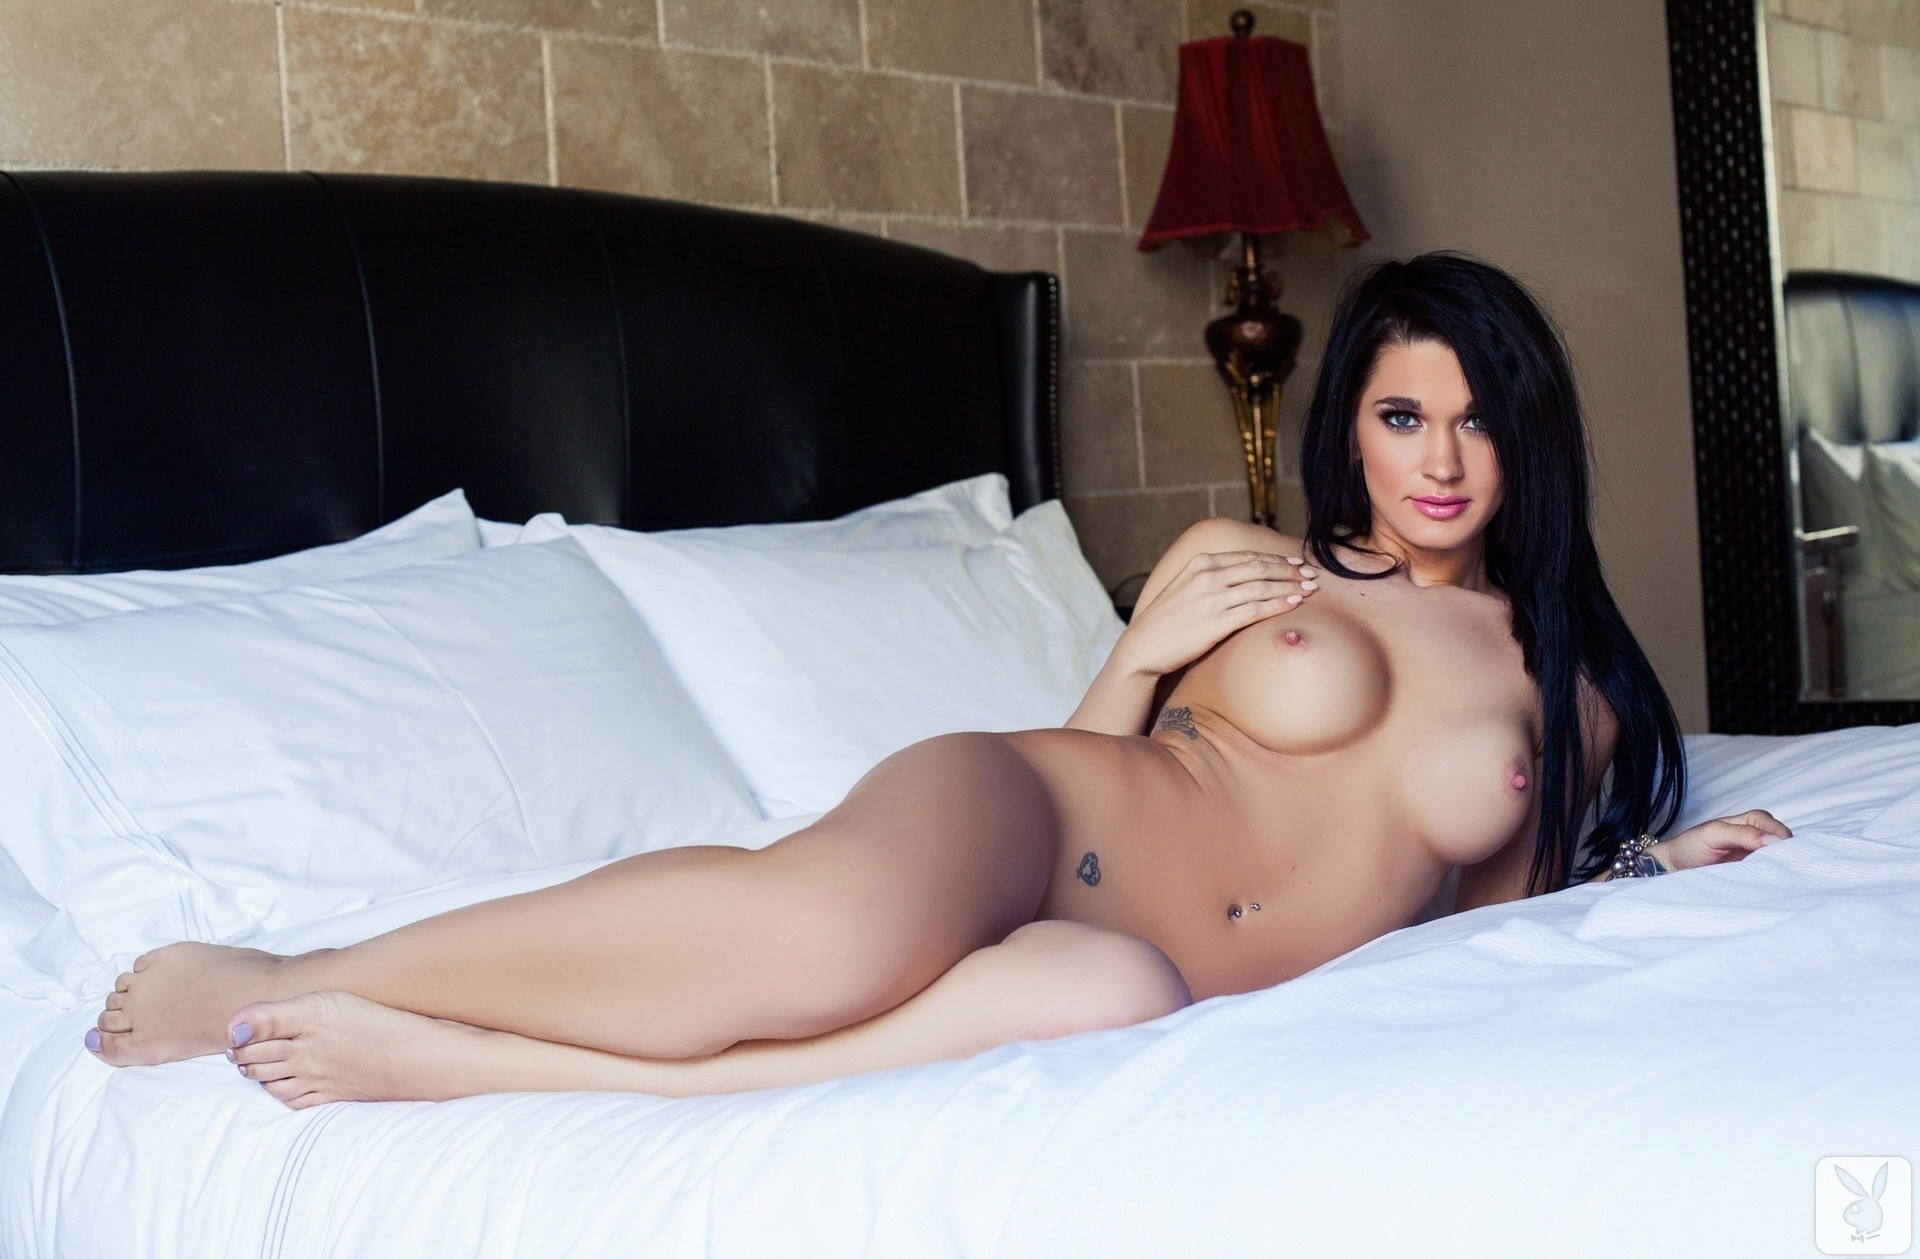 nude-video-porn-stars-naked-in-bed-italtian